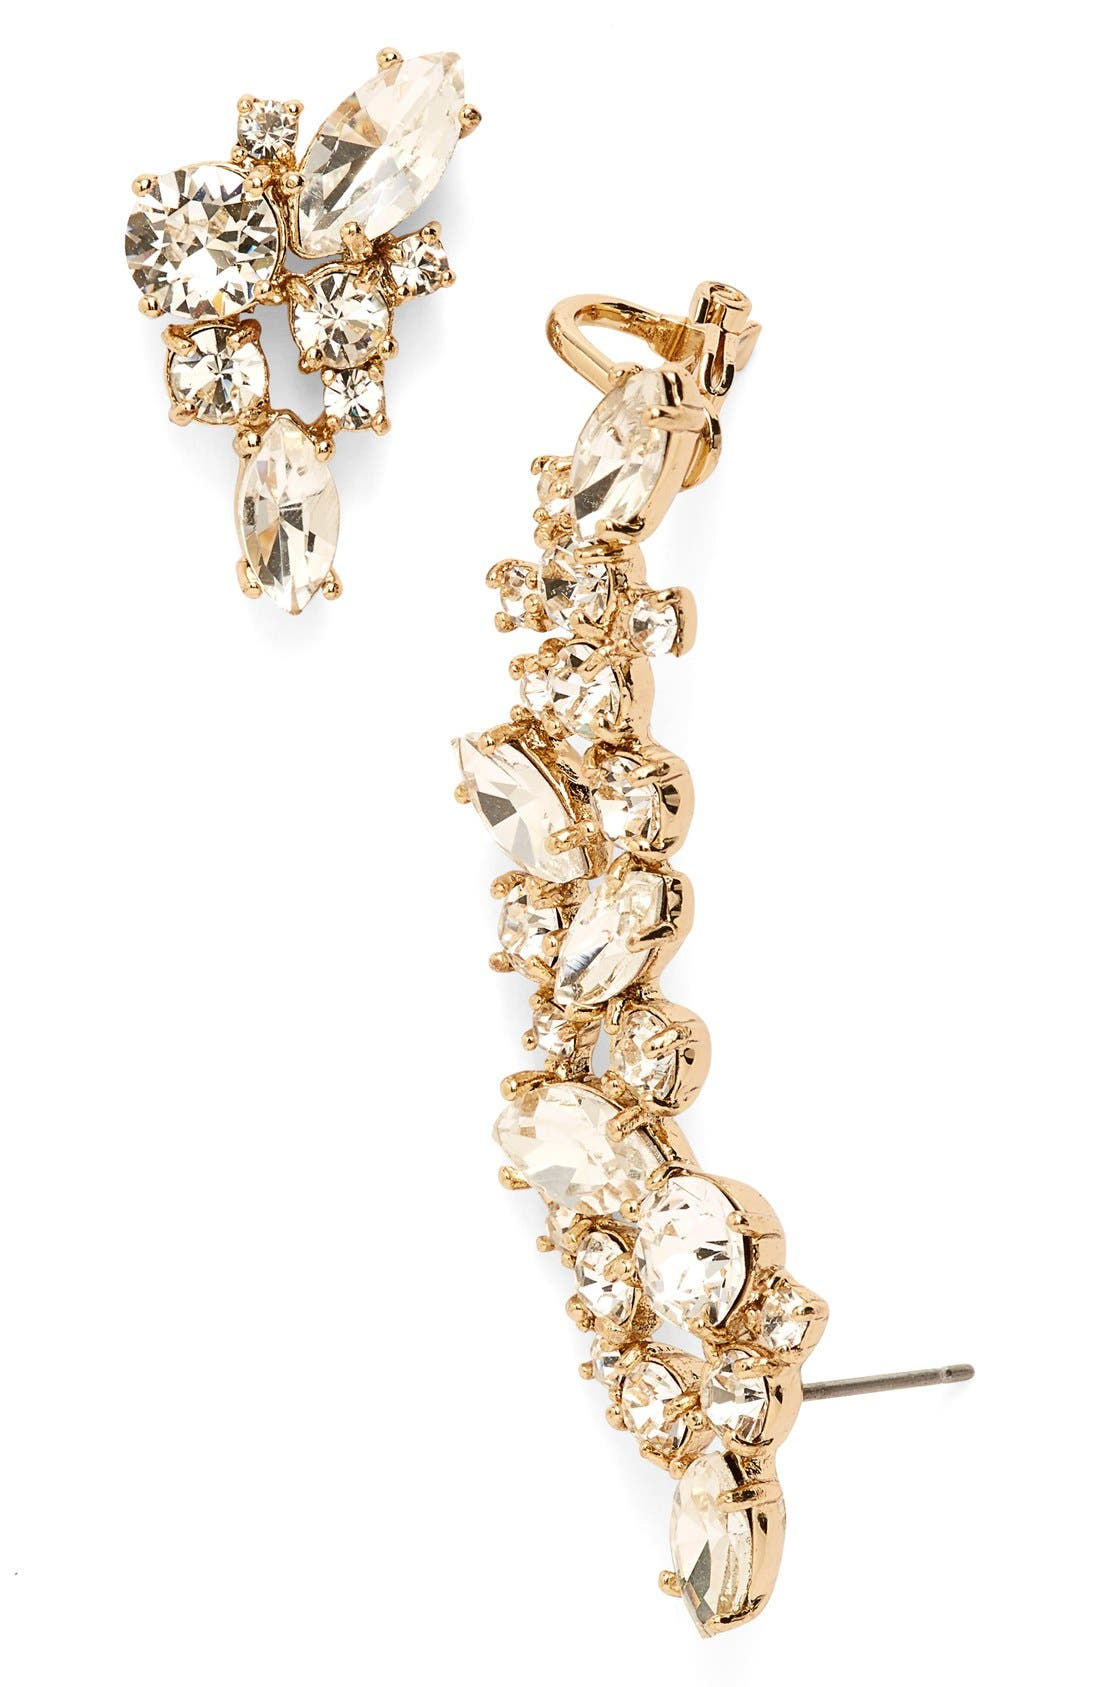 Alternate Image 1 Selected - Marchesa 'Drama' Crystal Ear Crawler & Stud Earring